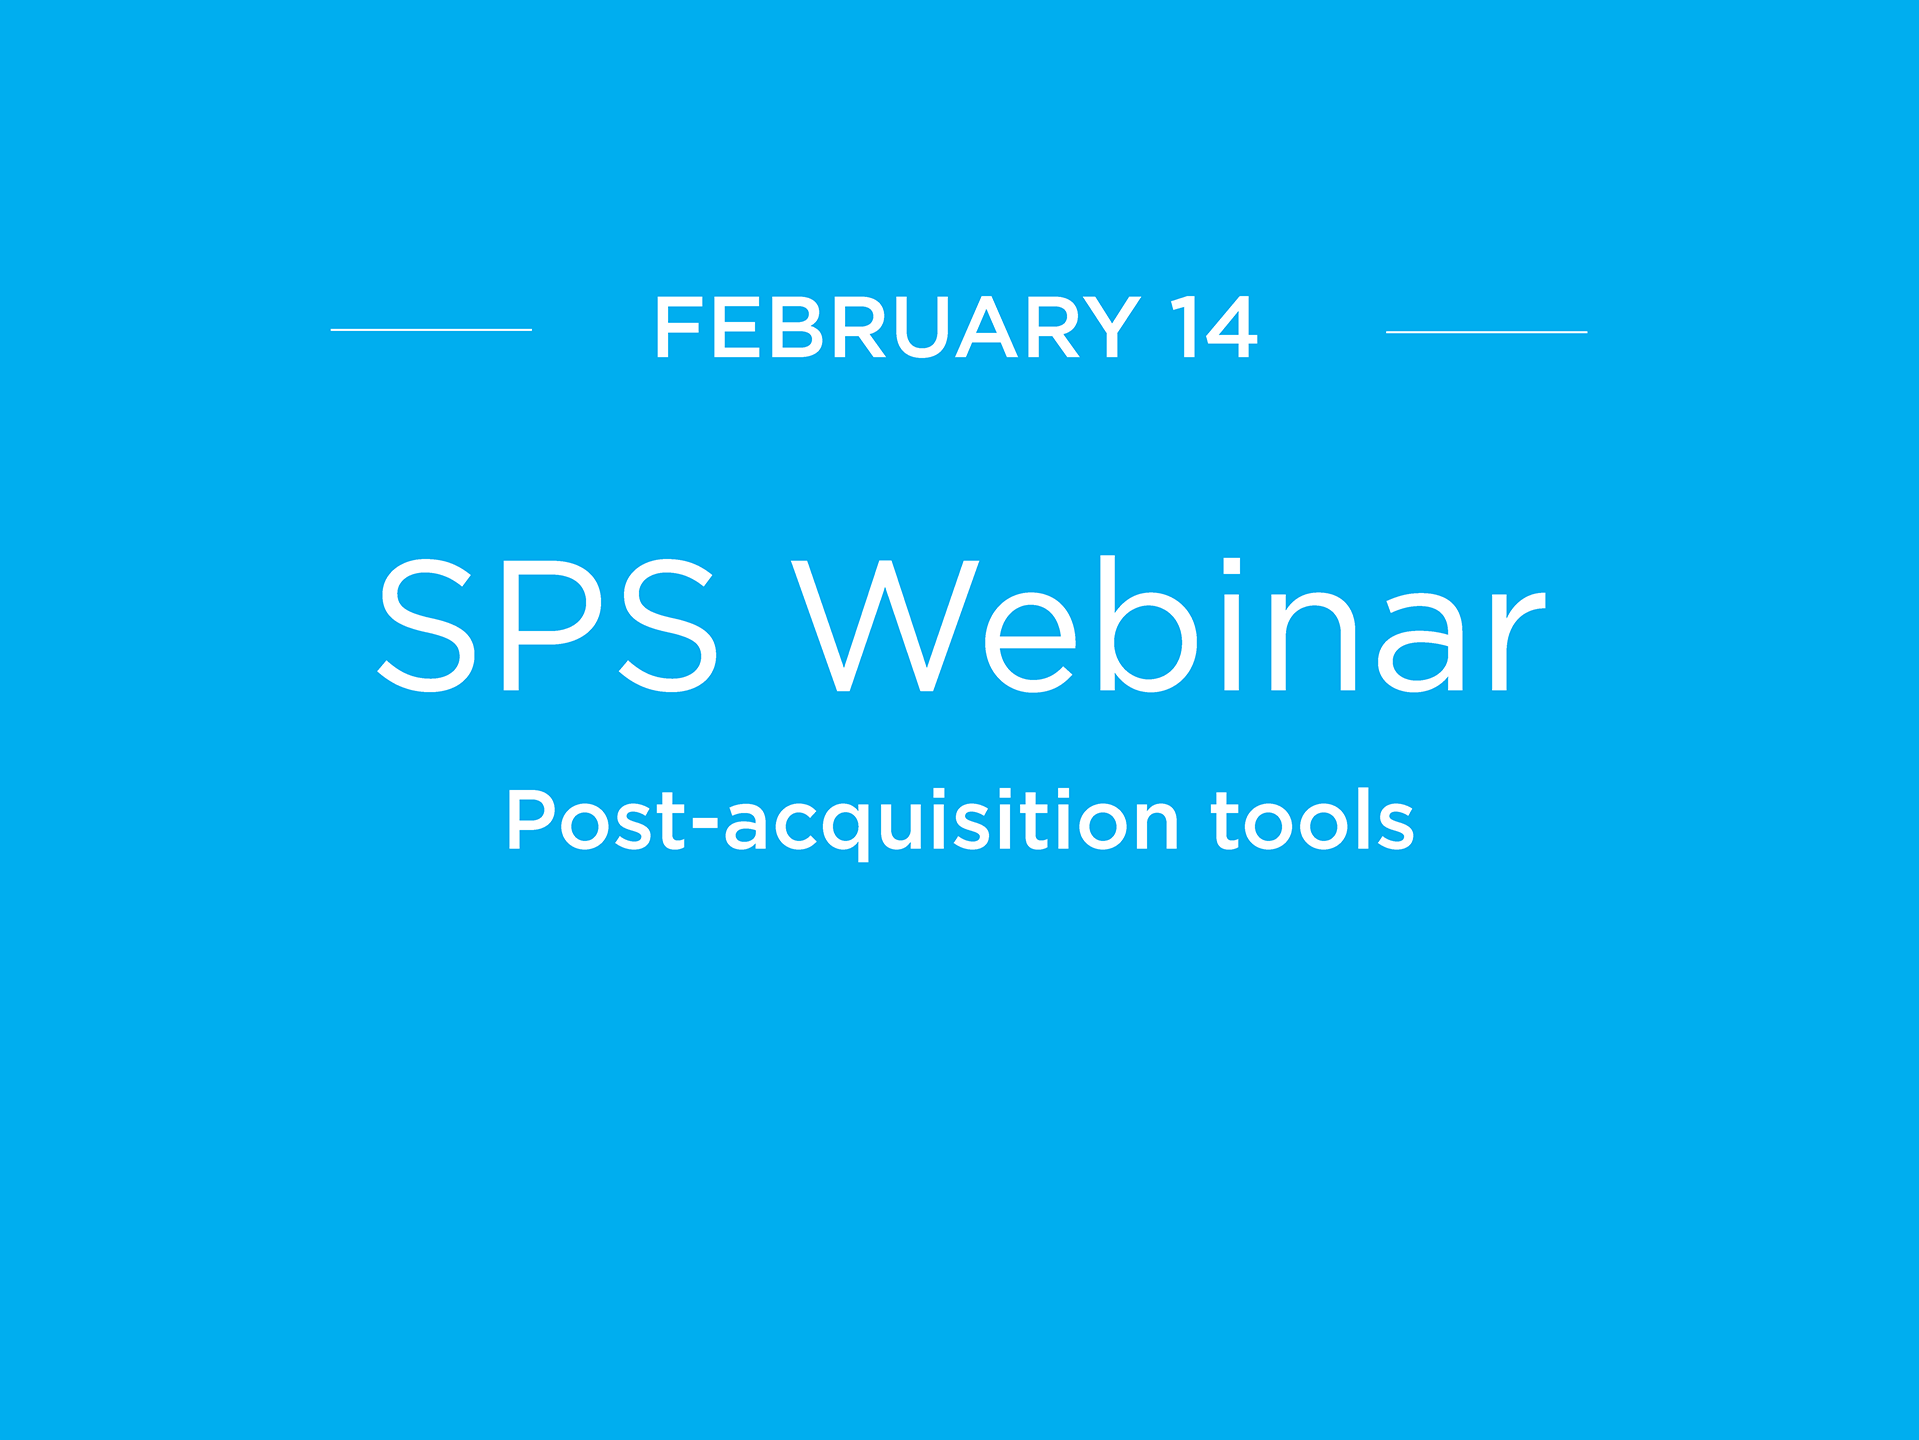 SPS webinar on post-acquisition tools